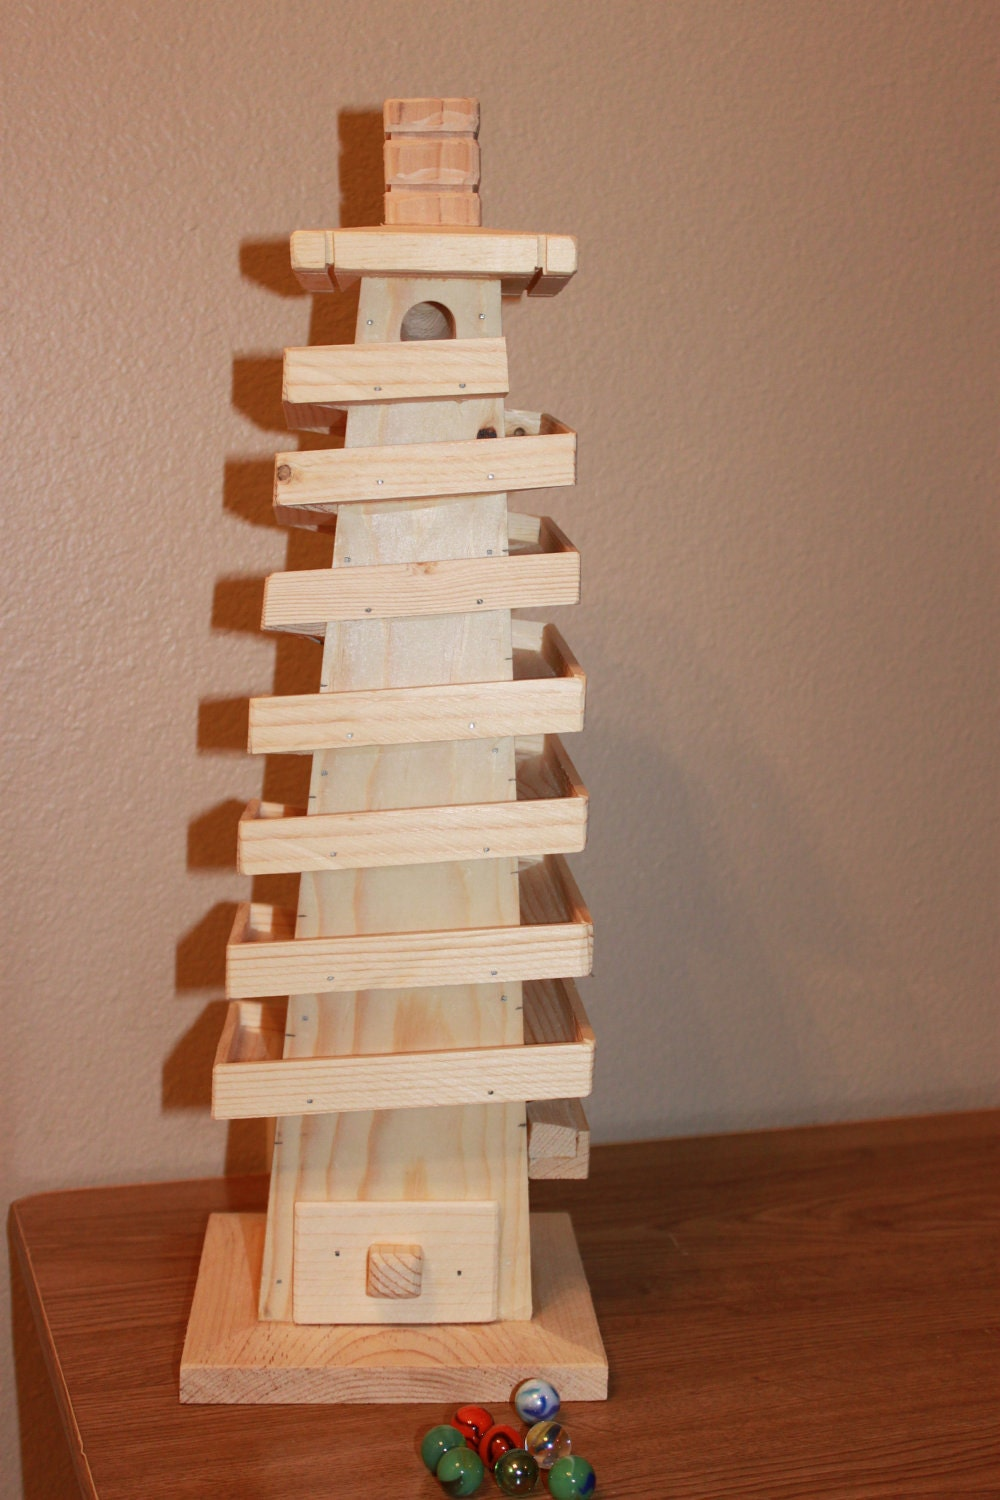 Marble Game Blocks : Wooden marble run tower by worldofakd on etsy